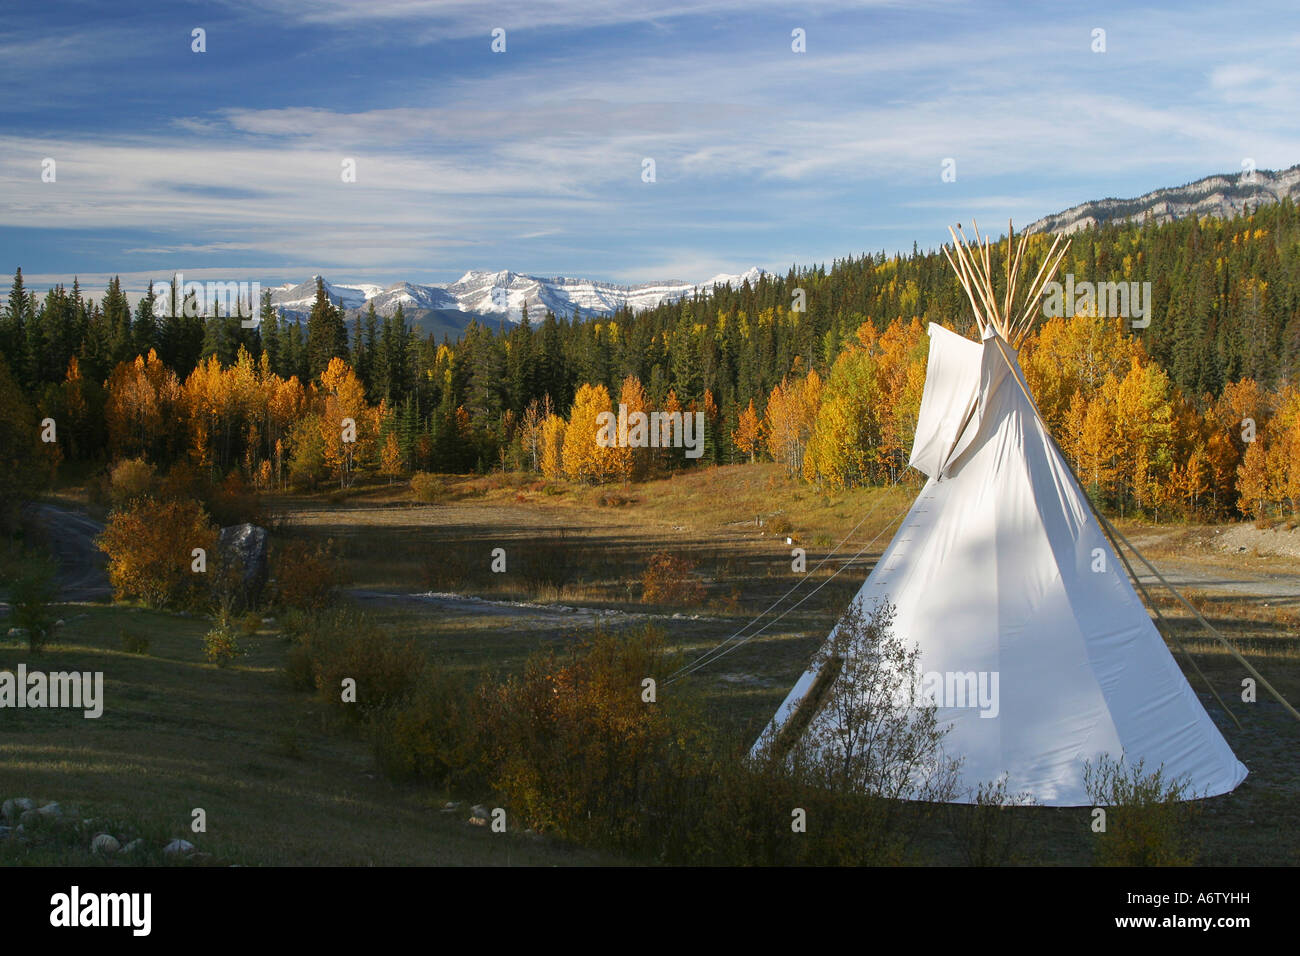 Tipi Wald Herbst Wald In Den Rocky Mountains David Thompson